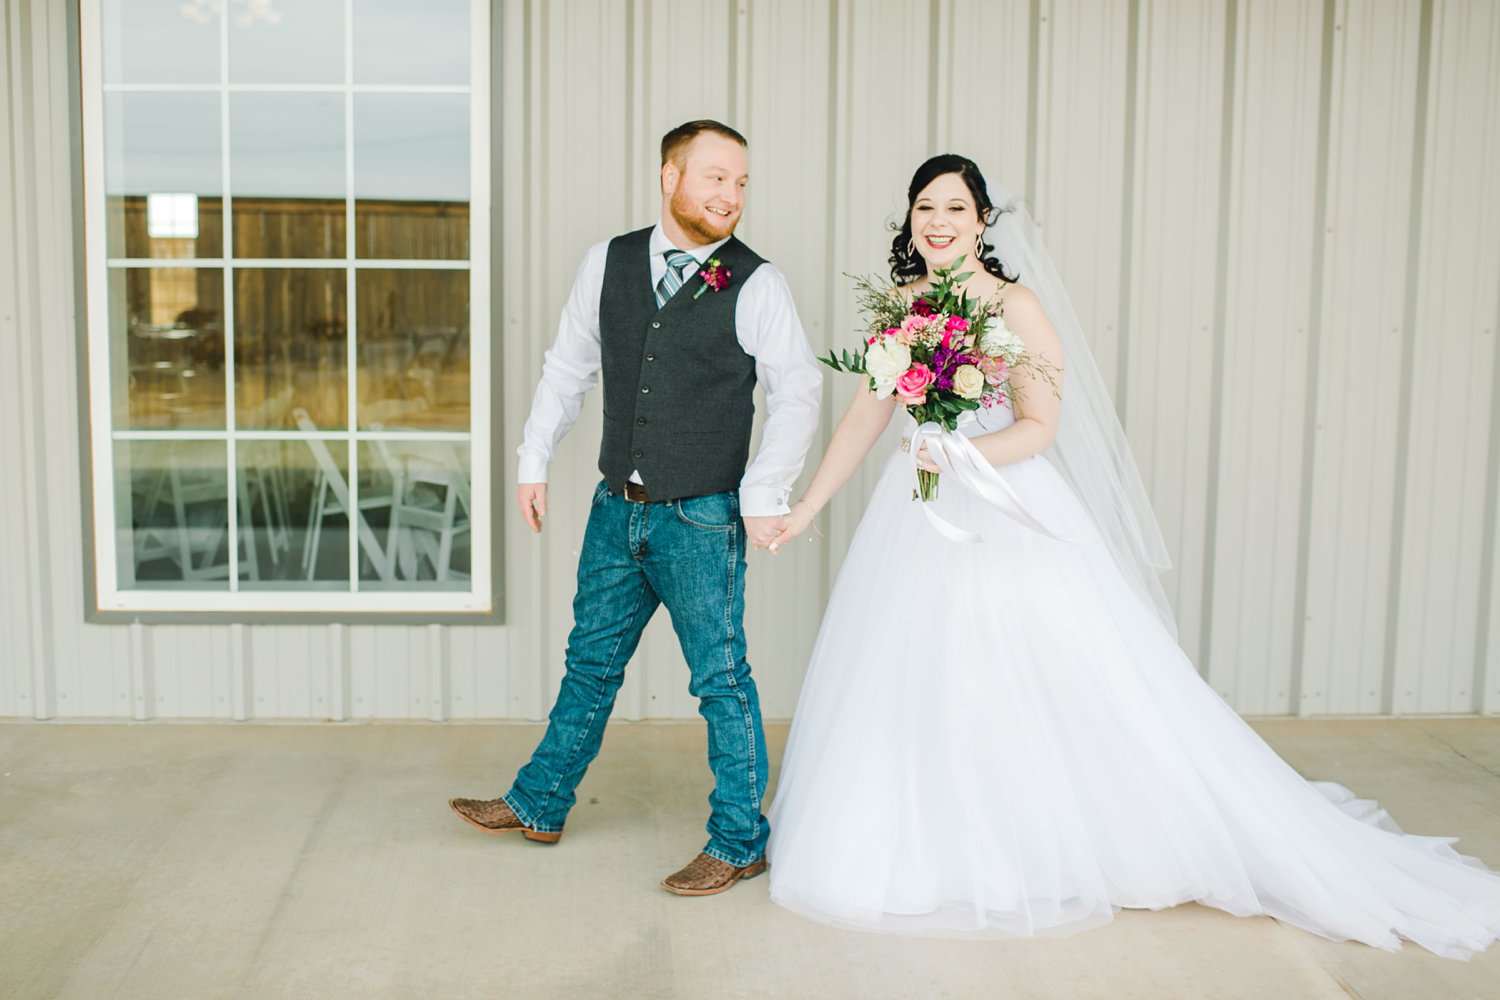 Autumn-Oaks-Events-Morgan-Andy-Lane-Wedding-Lubbock-Photography__0027.jpg